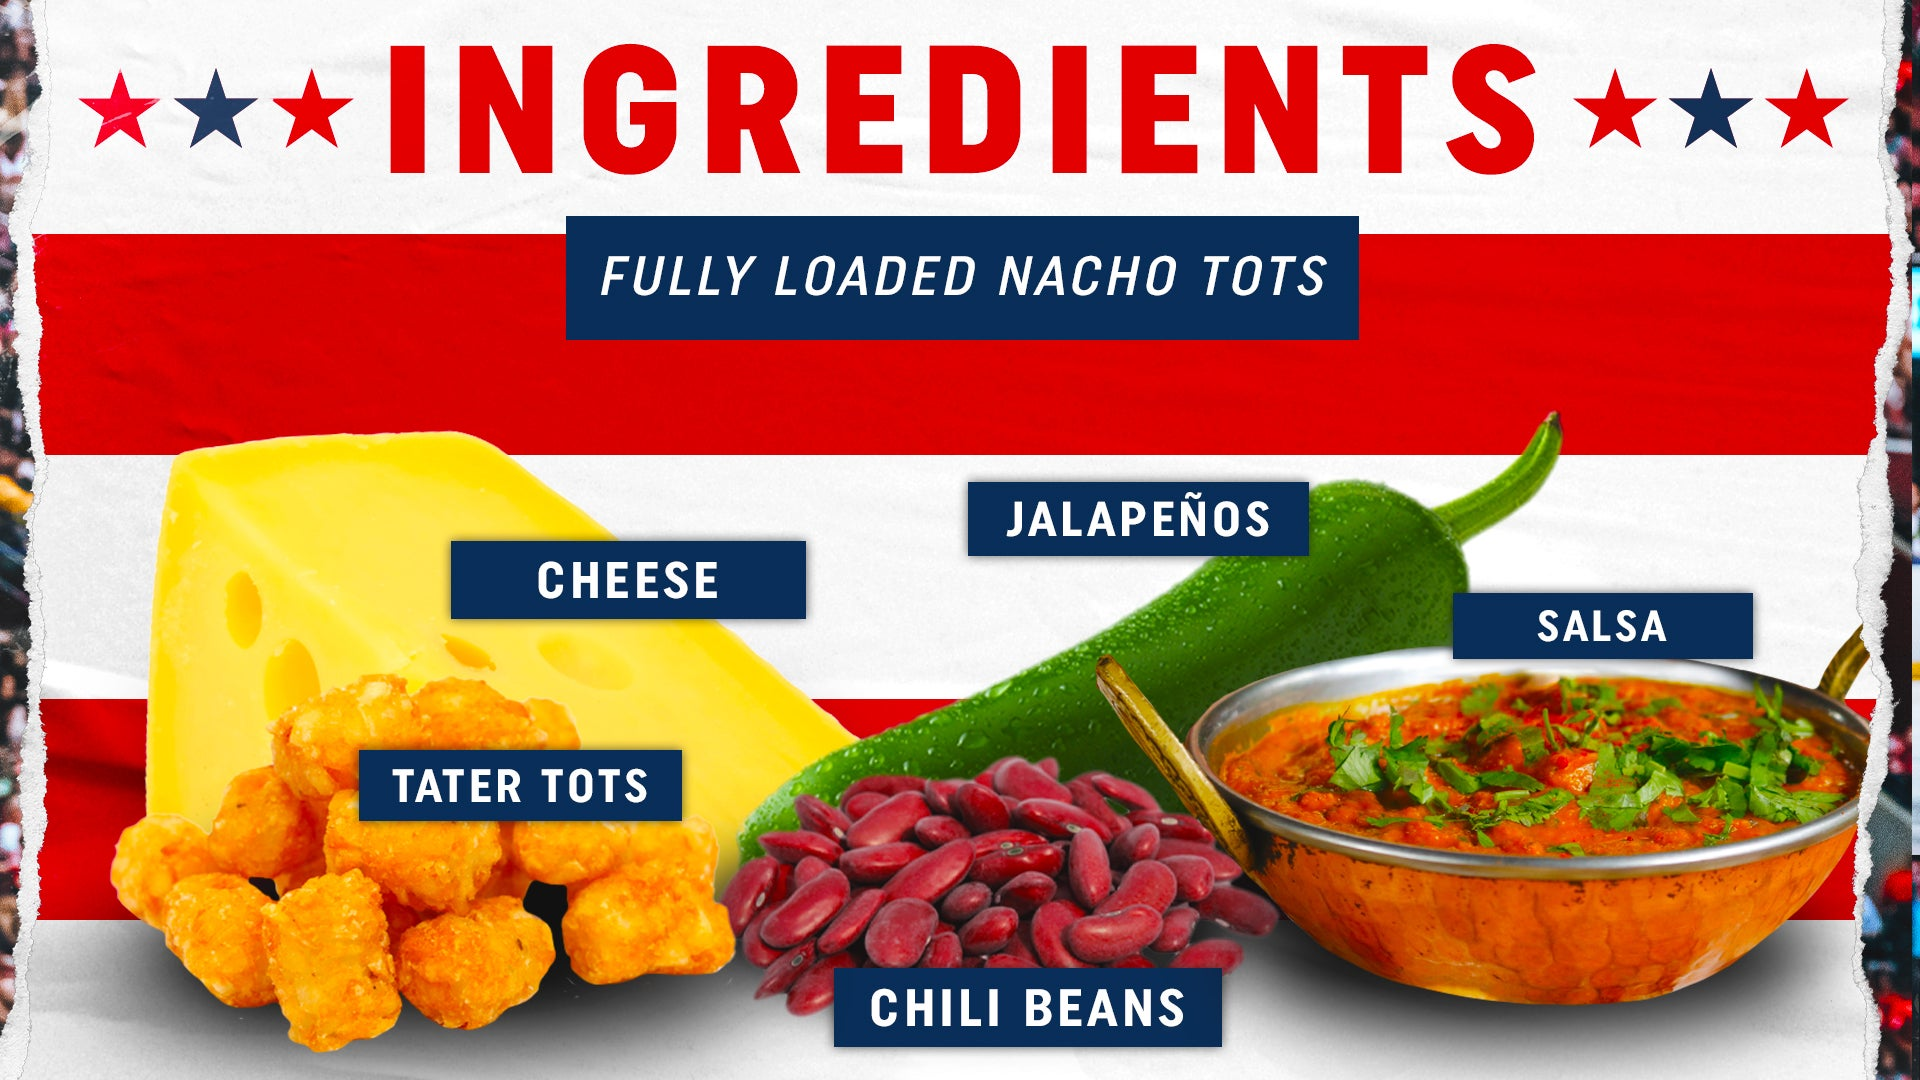 FLA_Panthers_4th_July_Recipe_Nacho_Tots_Ingredients_16x9.jpg